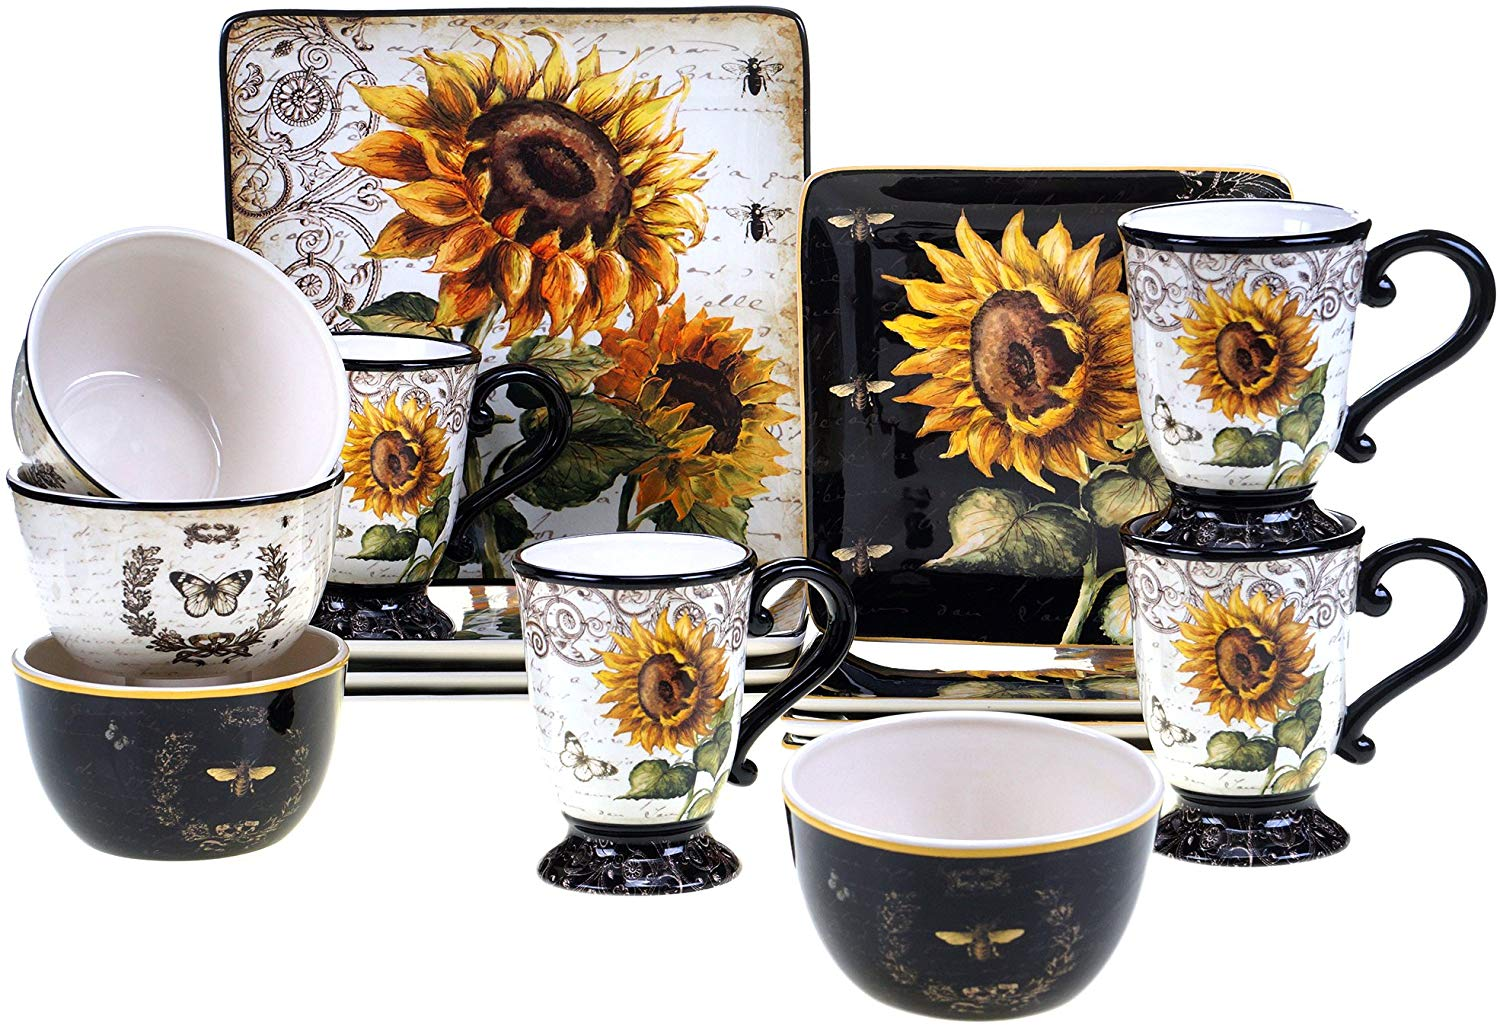 sunflower-kitchen-decor-dinner-set